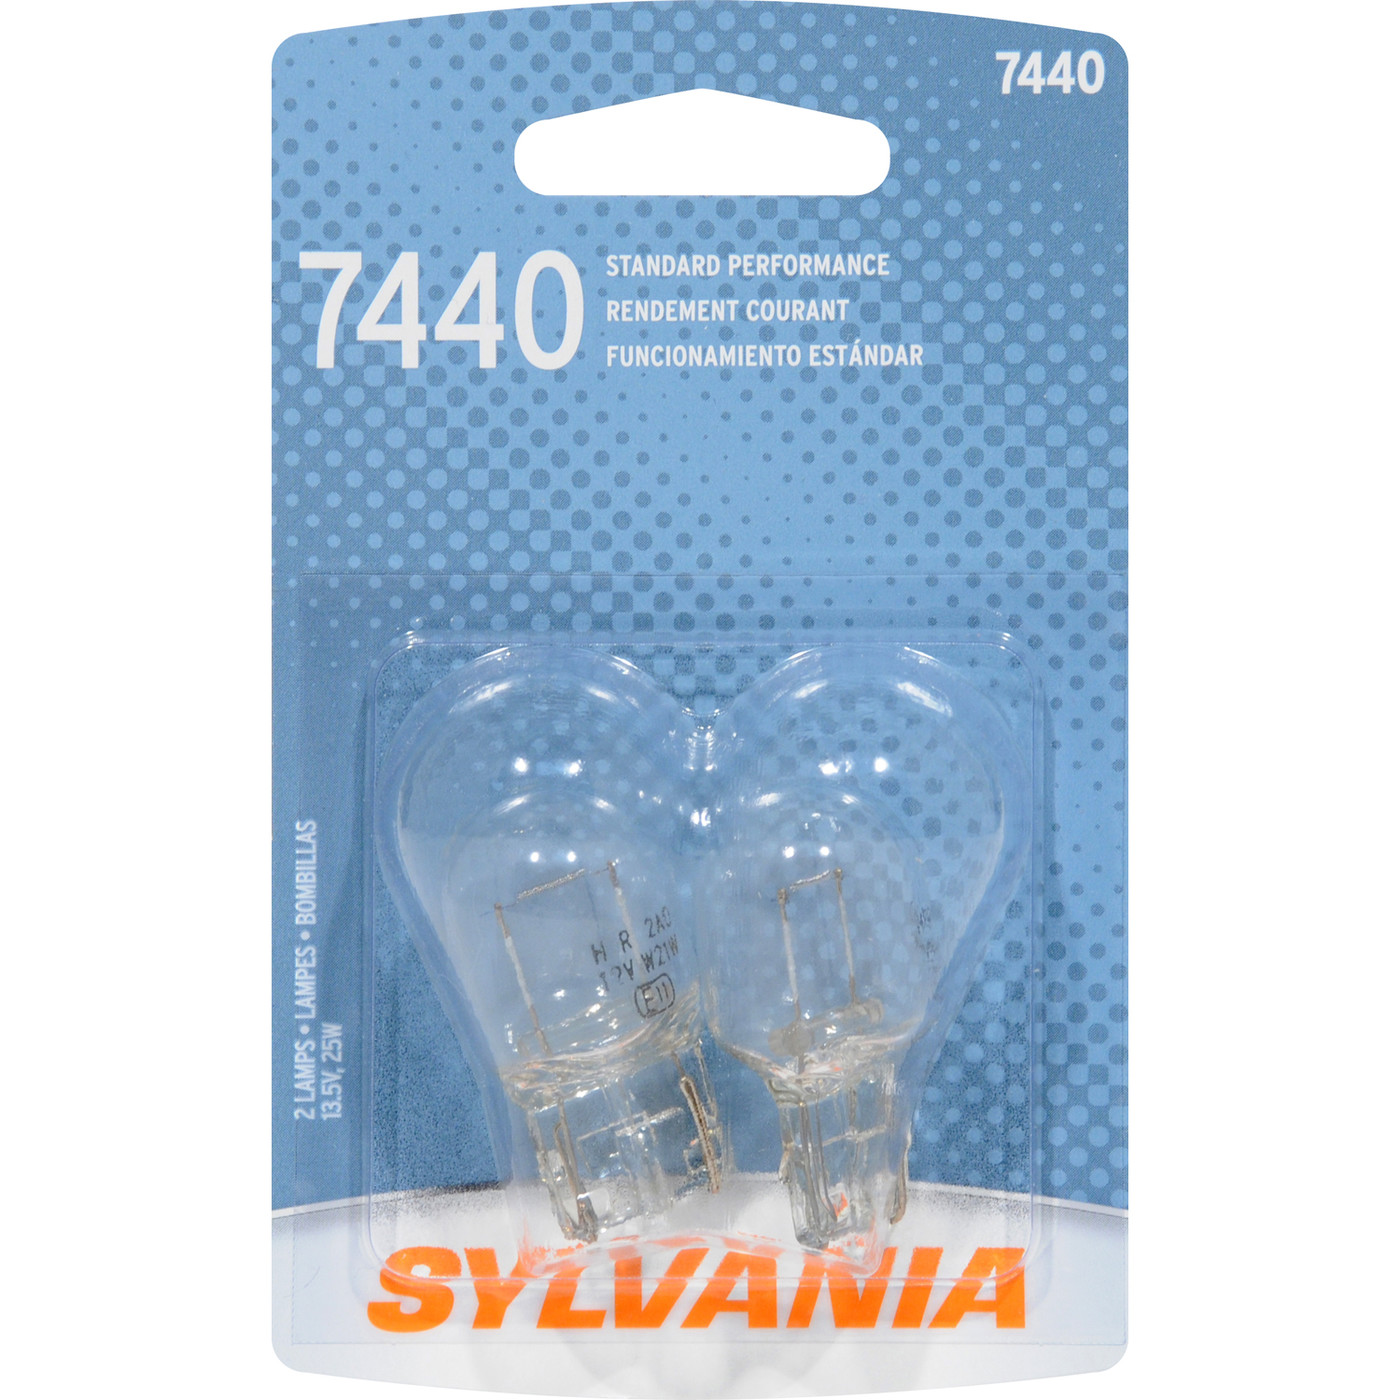 SYLVANIA RETAIL PACKS - Blister Pack Twin Center High Mount Stop Light Bulb - SYR 7440.BP2